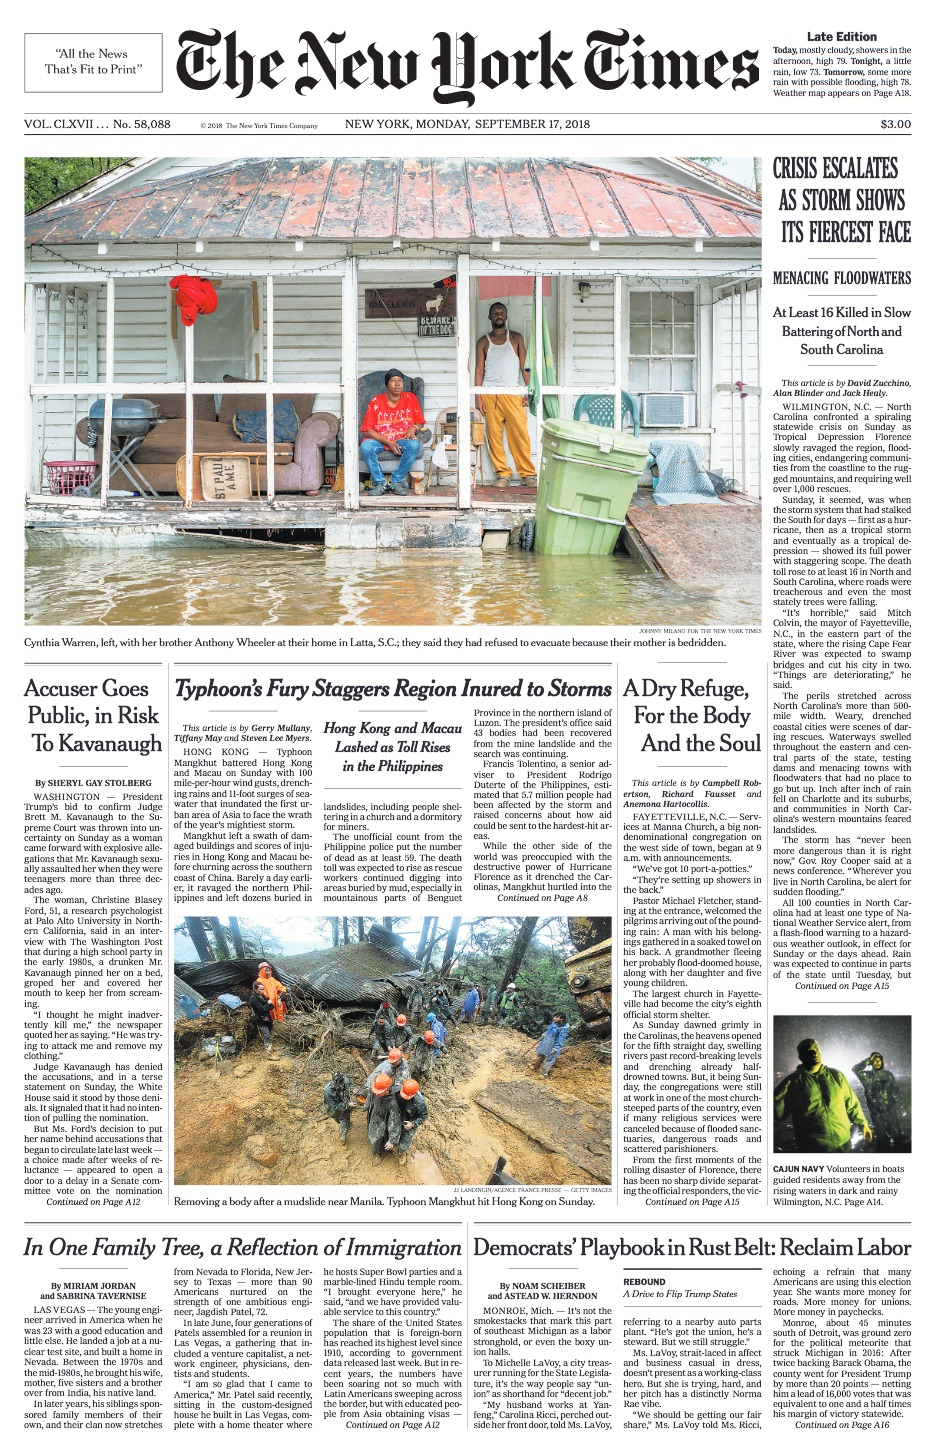 NYT_FrontPage_091718.jpg